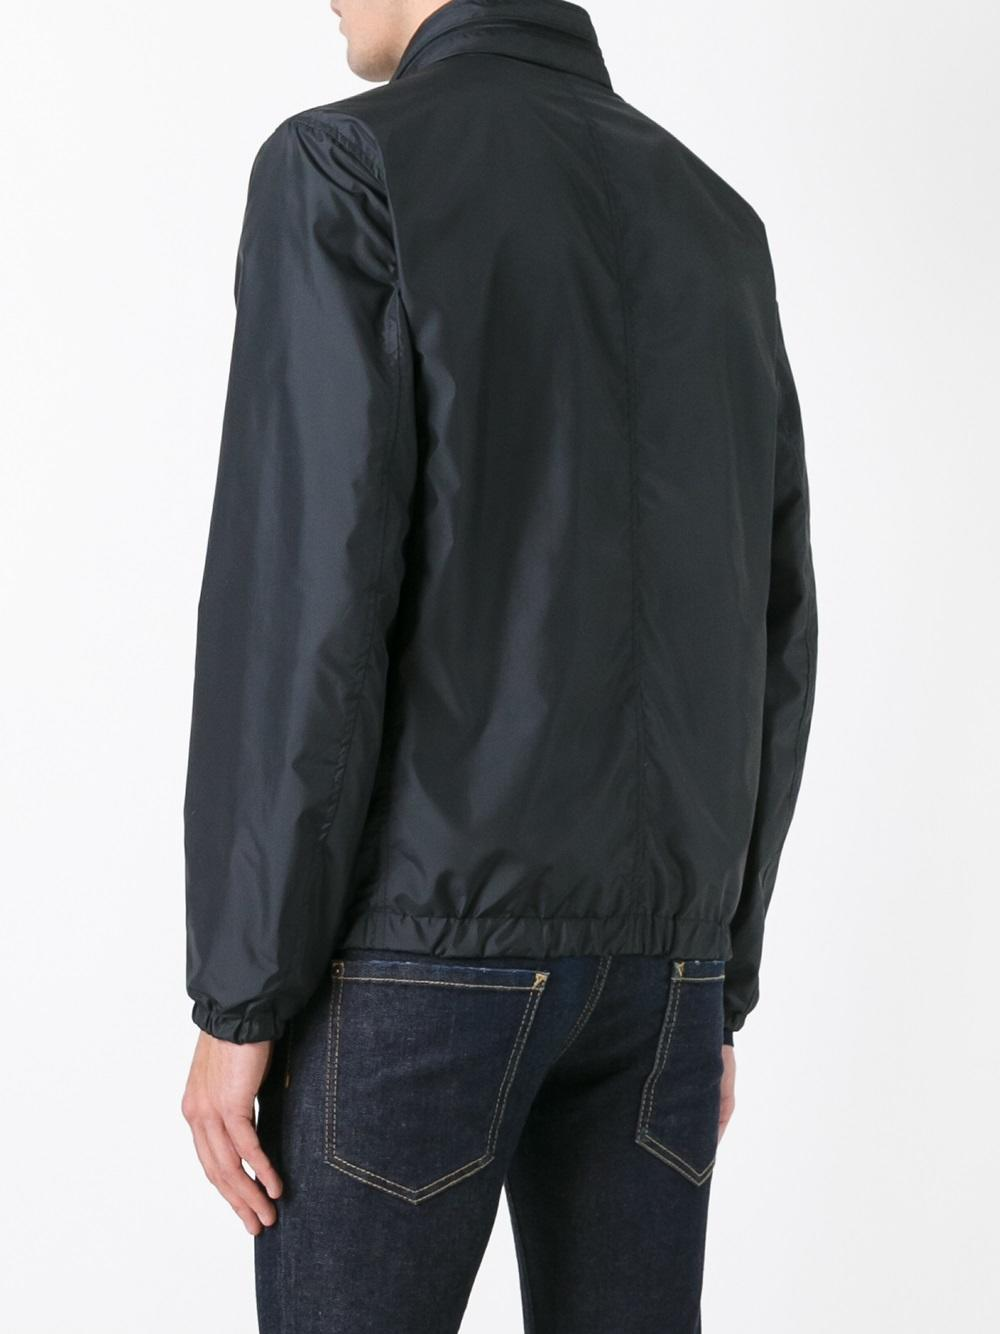 Ferragamo Band Collar Double-sided Jacket in Blue for Men